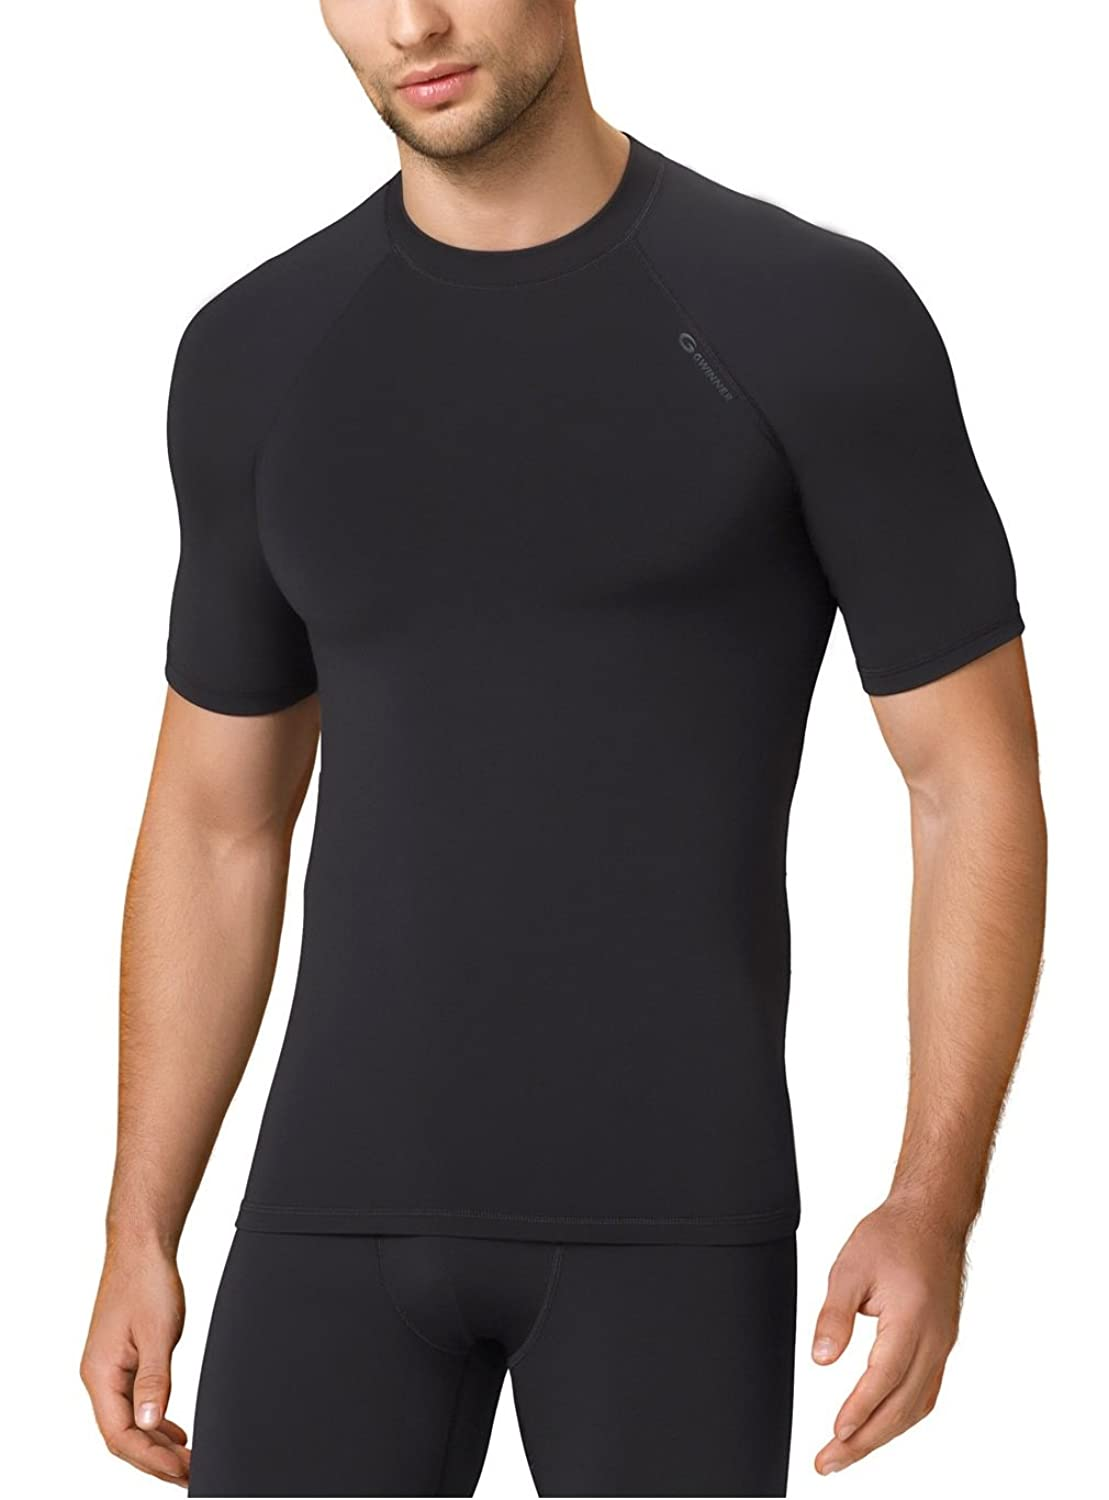 functional underwear men Tshirt ideal as skiing underwear and for daily use -Serie Blackline - made in EU from Gwinner